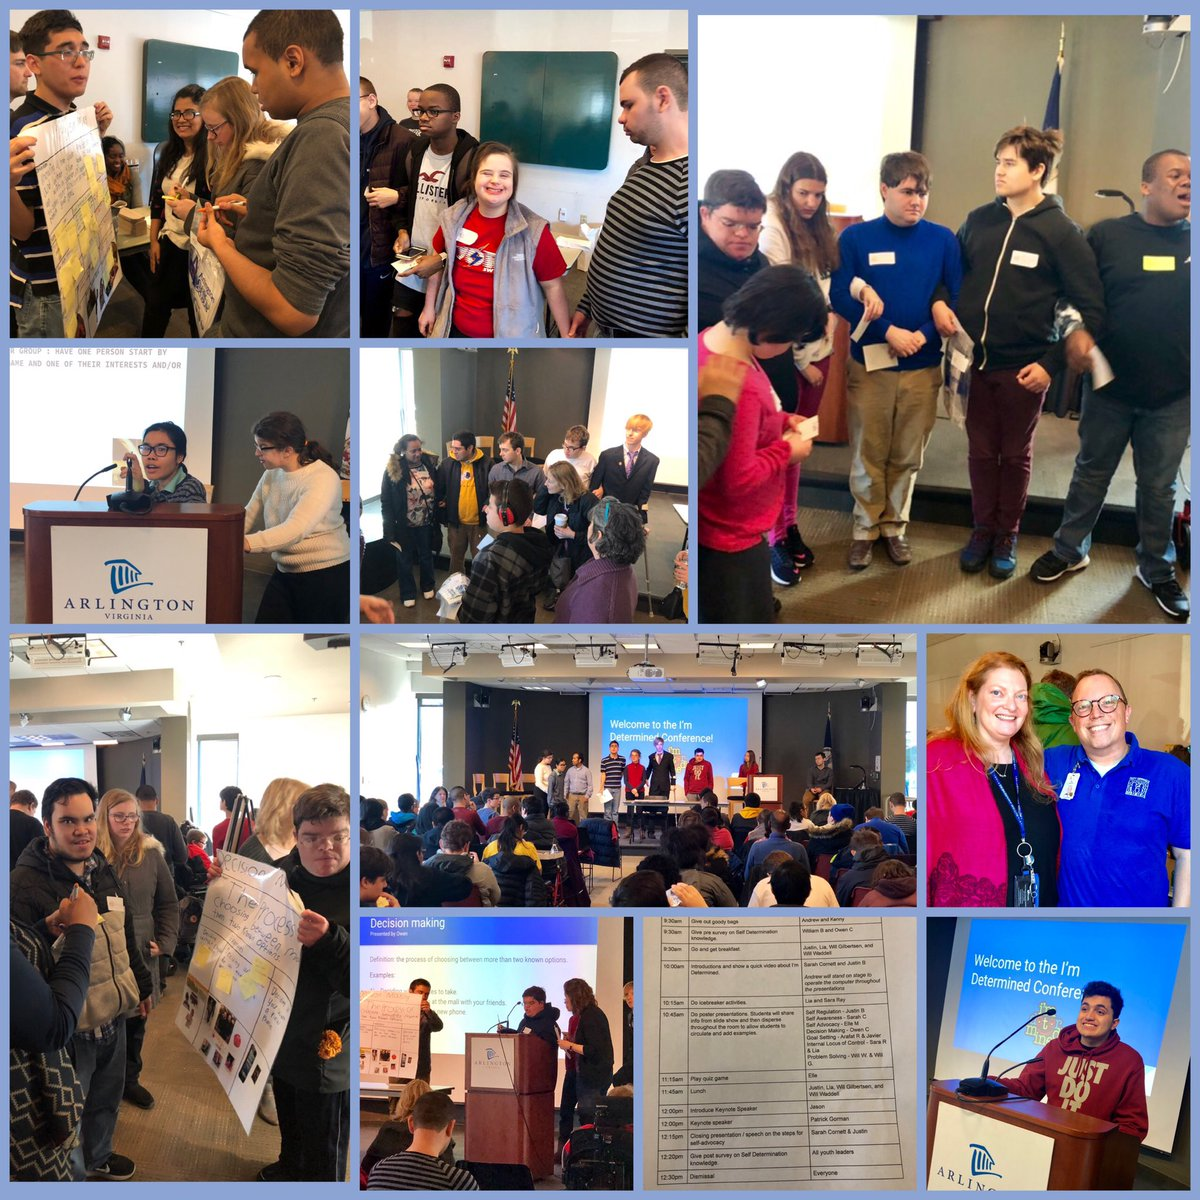 Our 2nd annual I'm Determined Conference was a huge hit with around 200 people in attendance! <a target='_blank' href='http://search.twitter.com/search?q=PEPproud'><a target='_blank' href='https://twitter.com/hashtag/PEPproud?src=hash'>#PEPproud</a></a> <a target='_blank' href='http://twitter.com/Margaretchungcc'>@Margaretchungcc</a> <a target='_blank' href='http://twitter.com/ACC_Partners'>@ACC_Partners</a> <a target='_blank' href='http://twitter.com/APHealeyACC'>@APHealeyACC</a> <a target='_blank' href='http://twitter.com/MsBakerACC'>@MsBakerACC</a> <a target='_blank' href='http://twitter.com/APS_SpecEduc'>@APS_SpecEduc</a> <a target='_blank' href='http://twitter.com/AutismAPS'>@AutismAPS</a> <a target='_blank' href='http://twitter.com/AutismOAR'>@AutismOAR</a> <a target='_blank' href='http://twitter.com/APSCareerCenter'>@APSCareerCenter</a> <a target='_blank' href='http://twitter.com/ArlingtonSEPTA'>@ArlingtonSEPTA</a> <a target='_blank' href='http://twitter.com/IMD_VDOE'>@IMD_VDOE</a> <a target='_blank' href='http://twitter.com/TheArcofNoVa'>@TheArcofNoVa</a> <a target='_blank' href='http://twitter.com/APSVirginia'>@APSVirginia</a> <a target='_blank' href='https://t.co/rgUq02kH1H'>https://t.co/rgUq02kH1H</a>